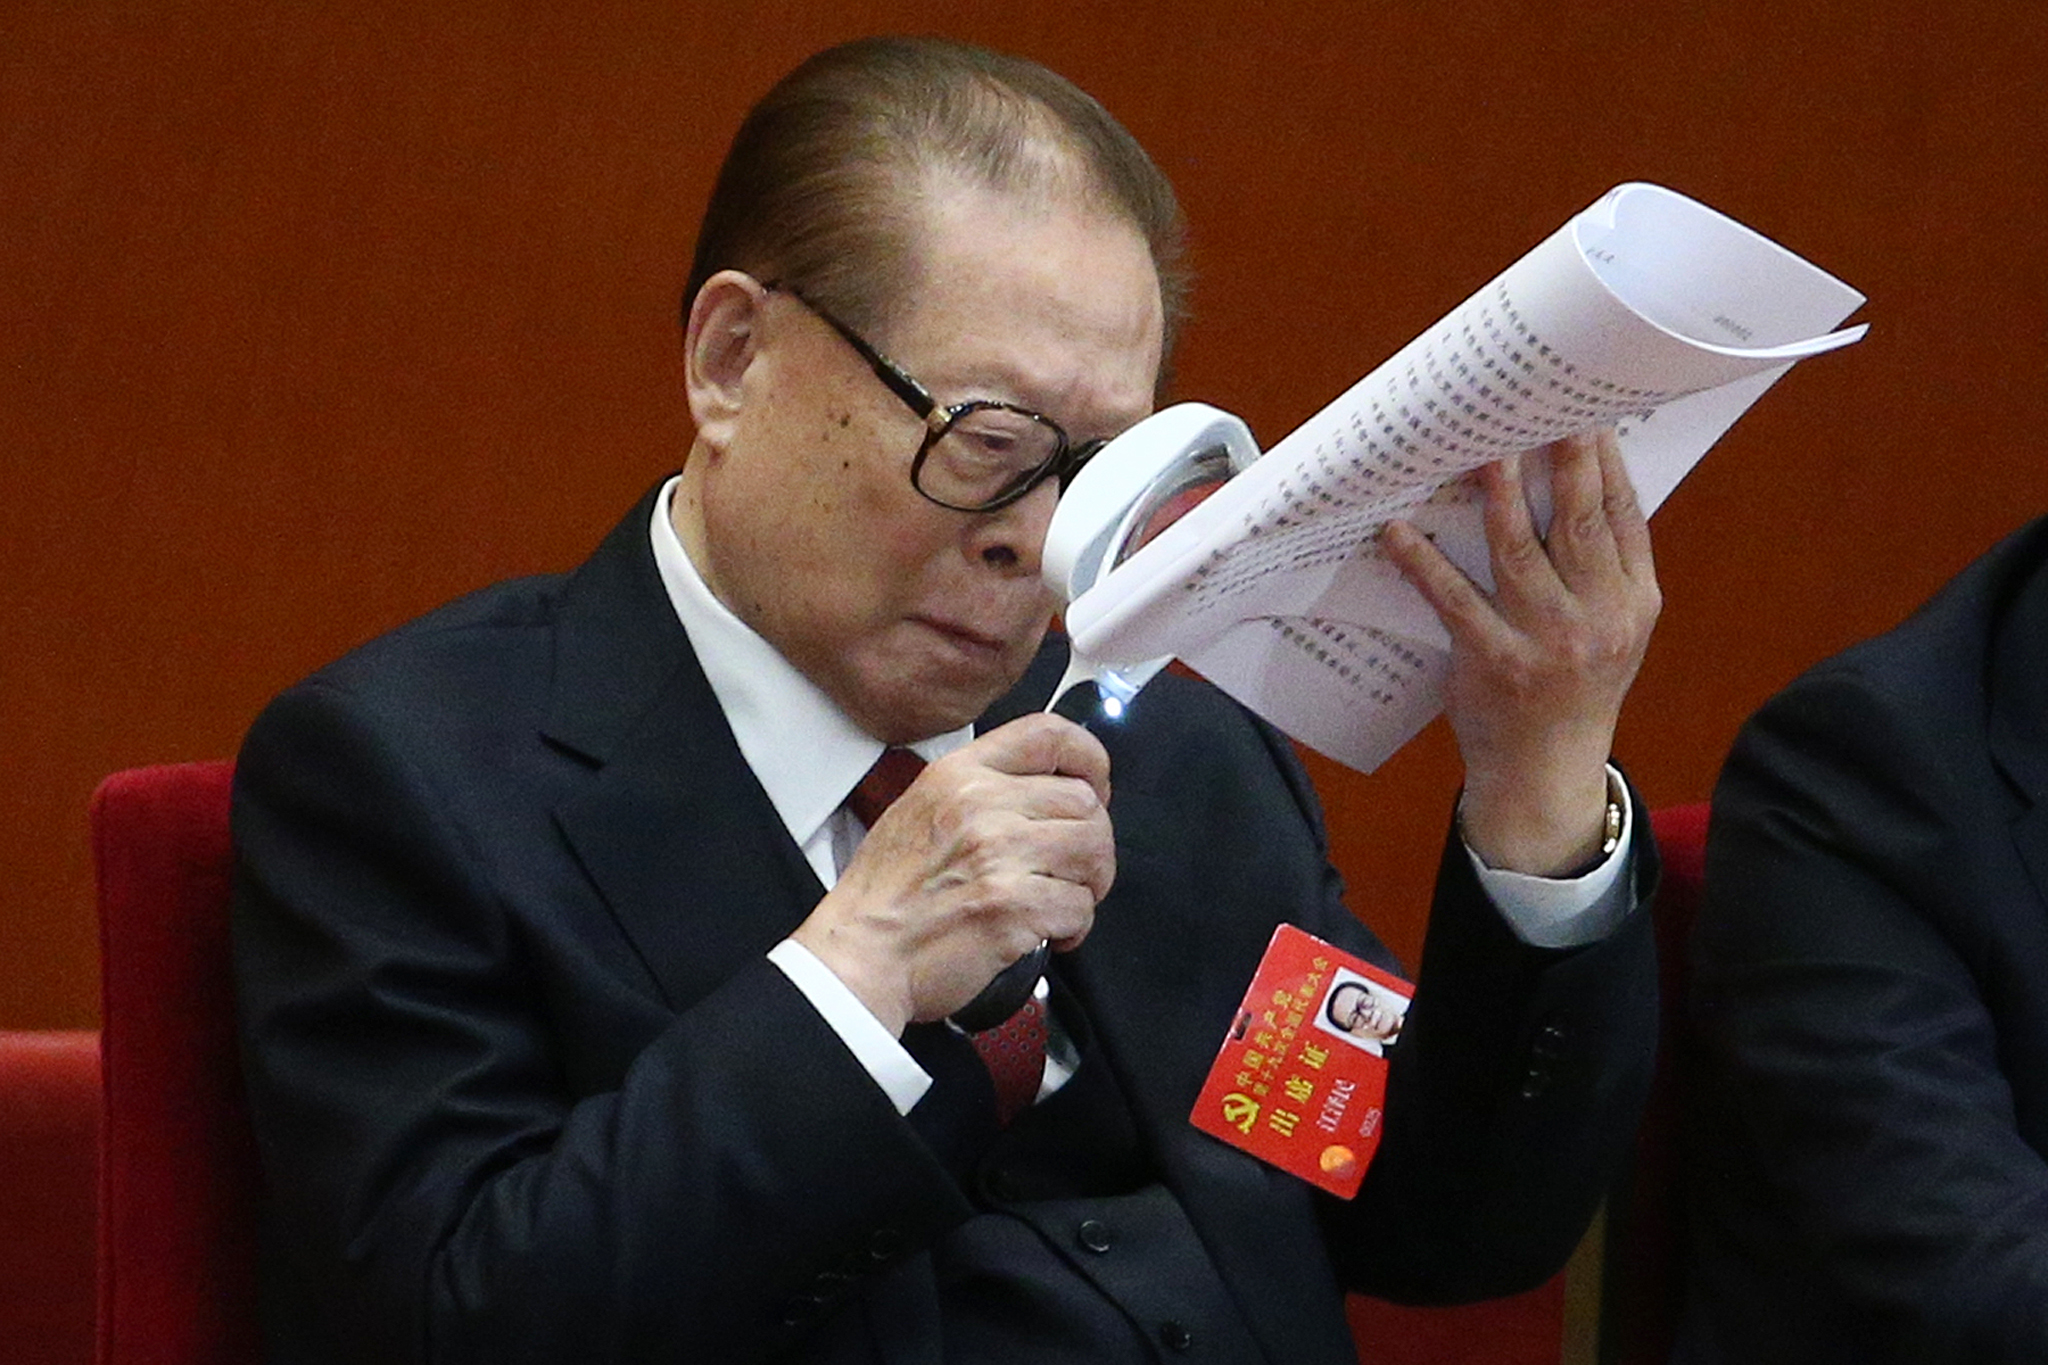 Former Chinese President Jiang Zemin holds a magnifying glass while reading a document during the opening ceremony of the 19th National Congress of the Communist Party of China (CPC) at the Great Hall of the People (GHOP) in Beijing, China, 18 October 2017. China holds the 19th Congress of the Communist Party of China, the country's most important political event where the party's leadership is chosen and plans are made for the next five years. Xi Jinping is expected to remain as the General Secretary of the Communist Party of China for another five-year term.